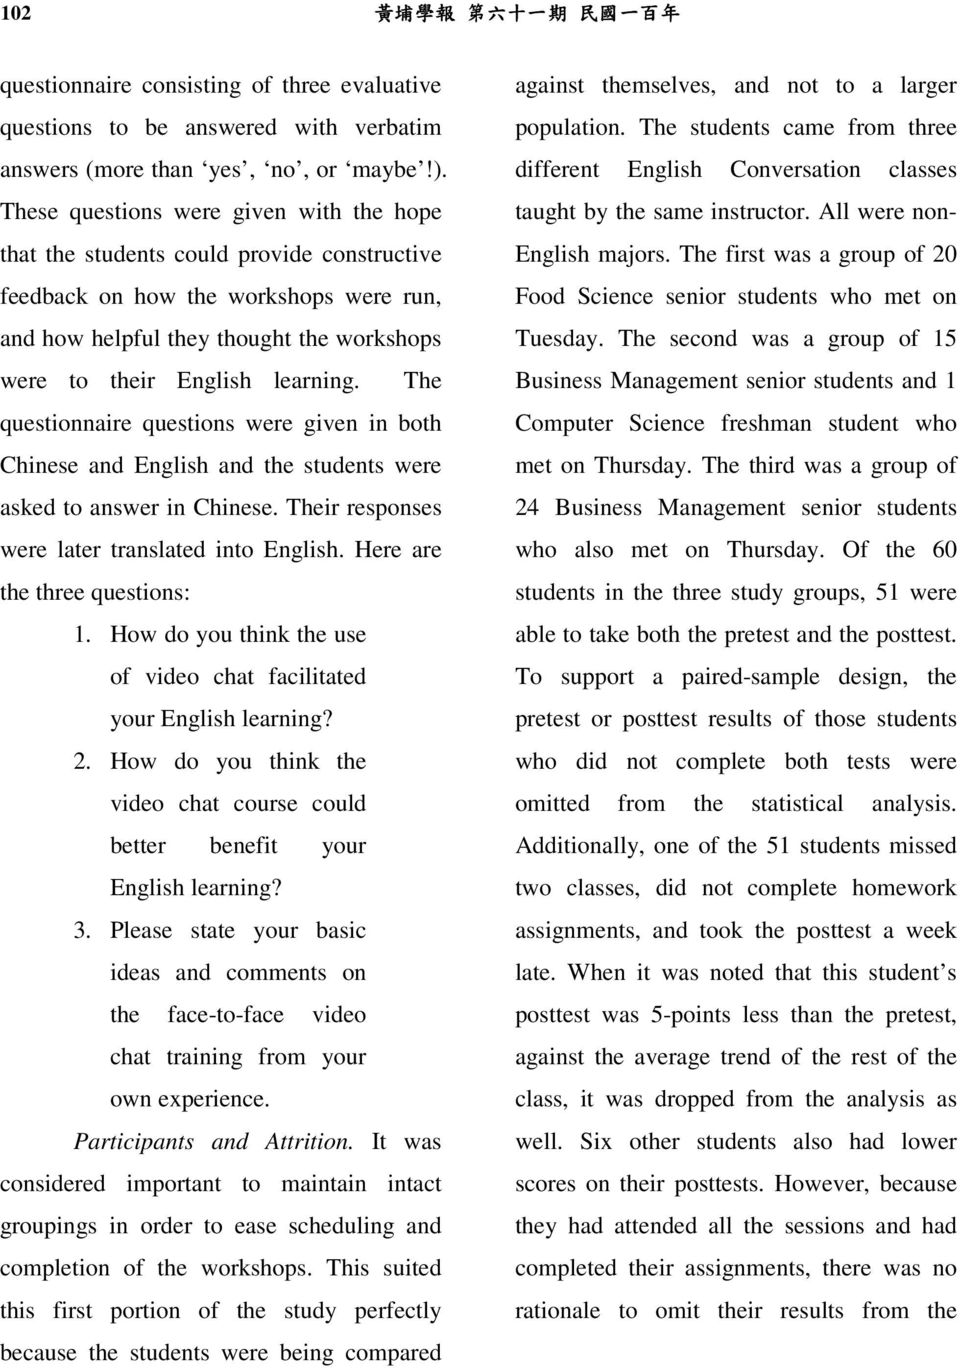 The questionnaire questions were given in both Chinese and English and the students were asked to answer in Chinese. Their responses were later translated into English.